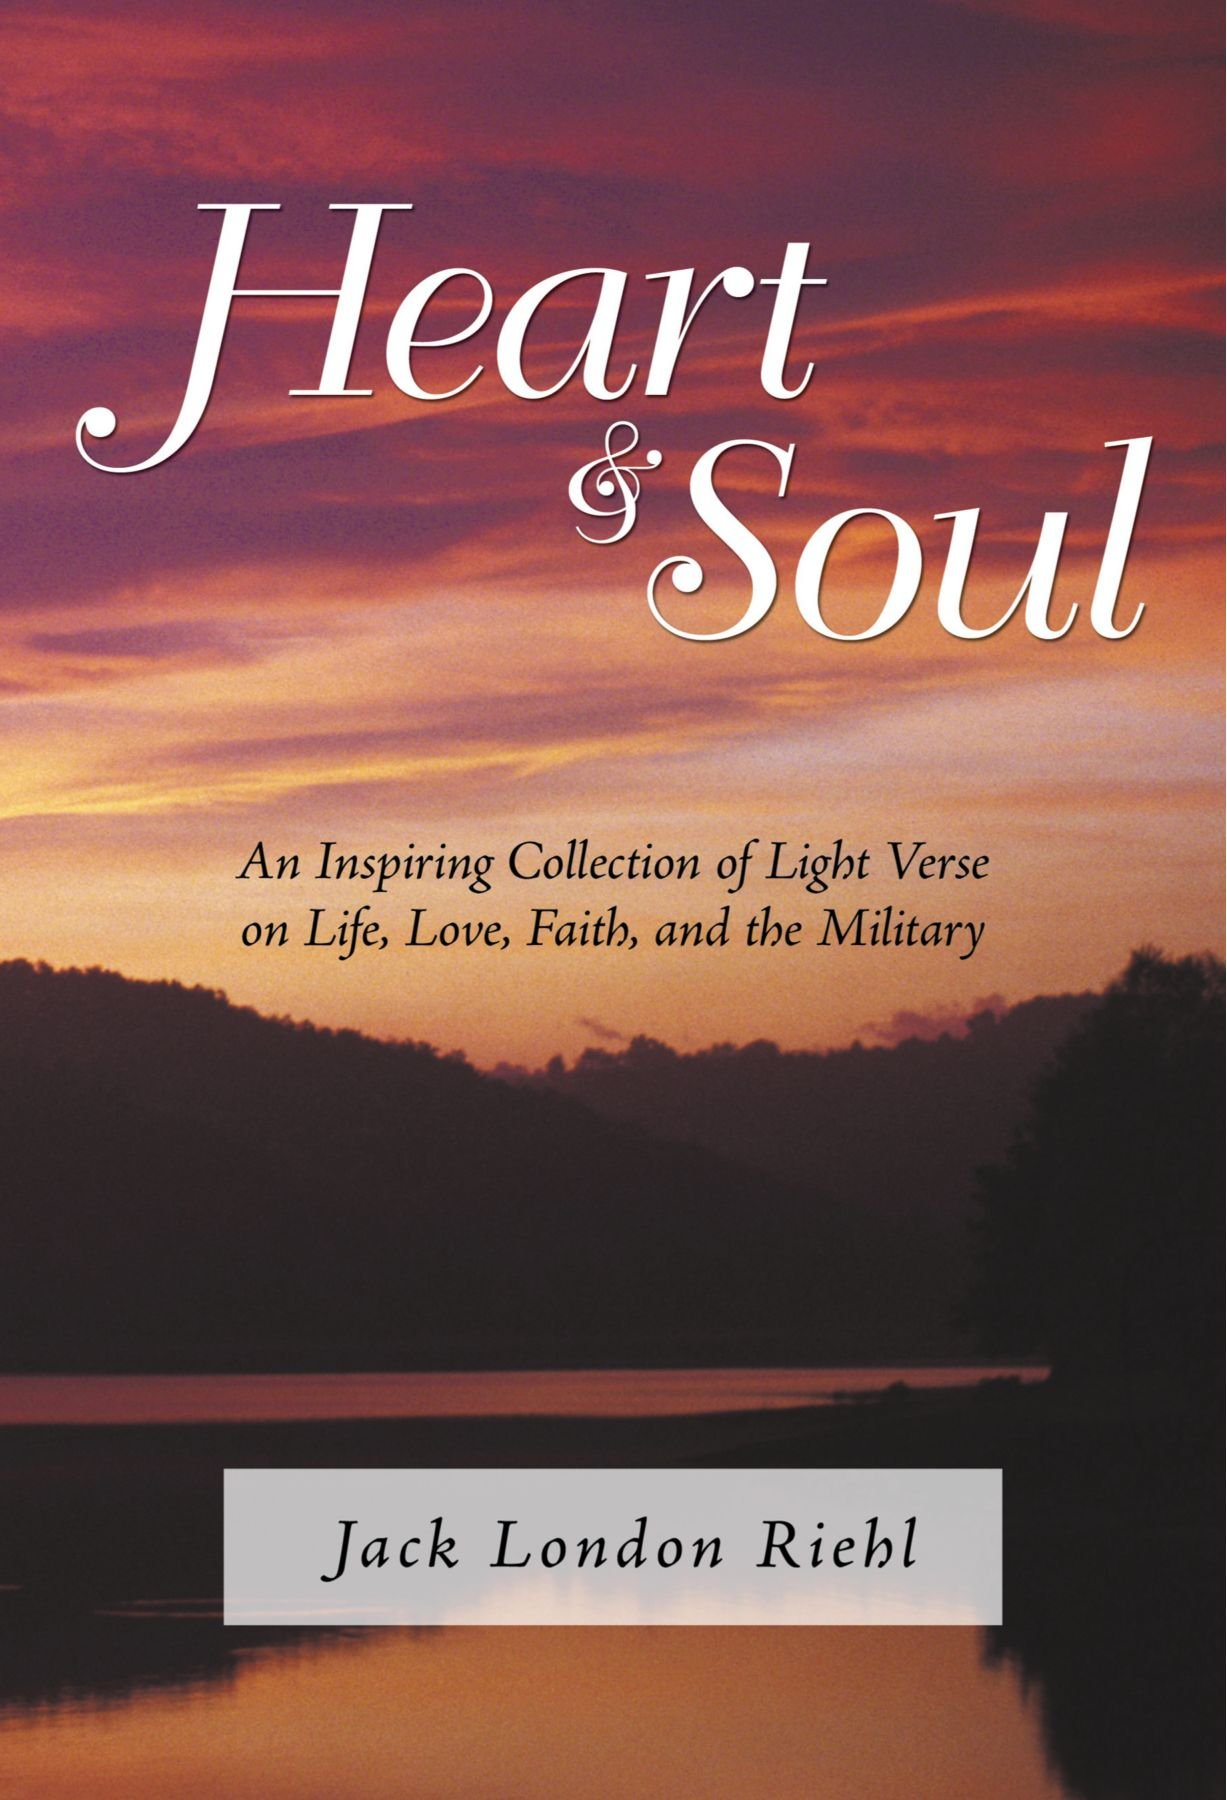 Heart & Soul: An Inspiring Collection of Light Verse on Life, Love, Faith, and the Military pdf